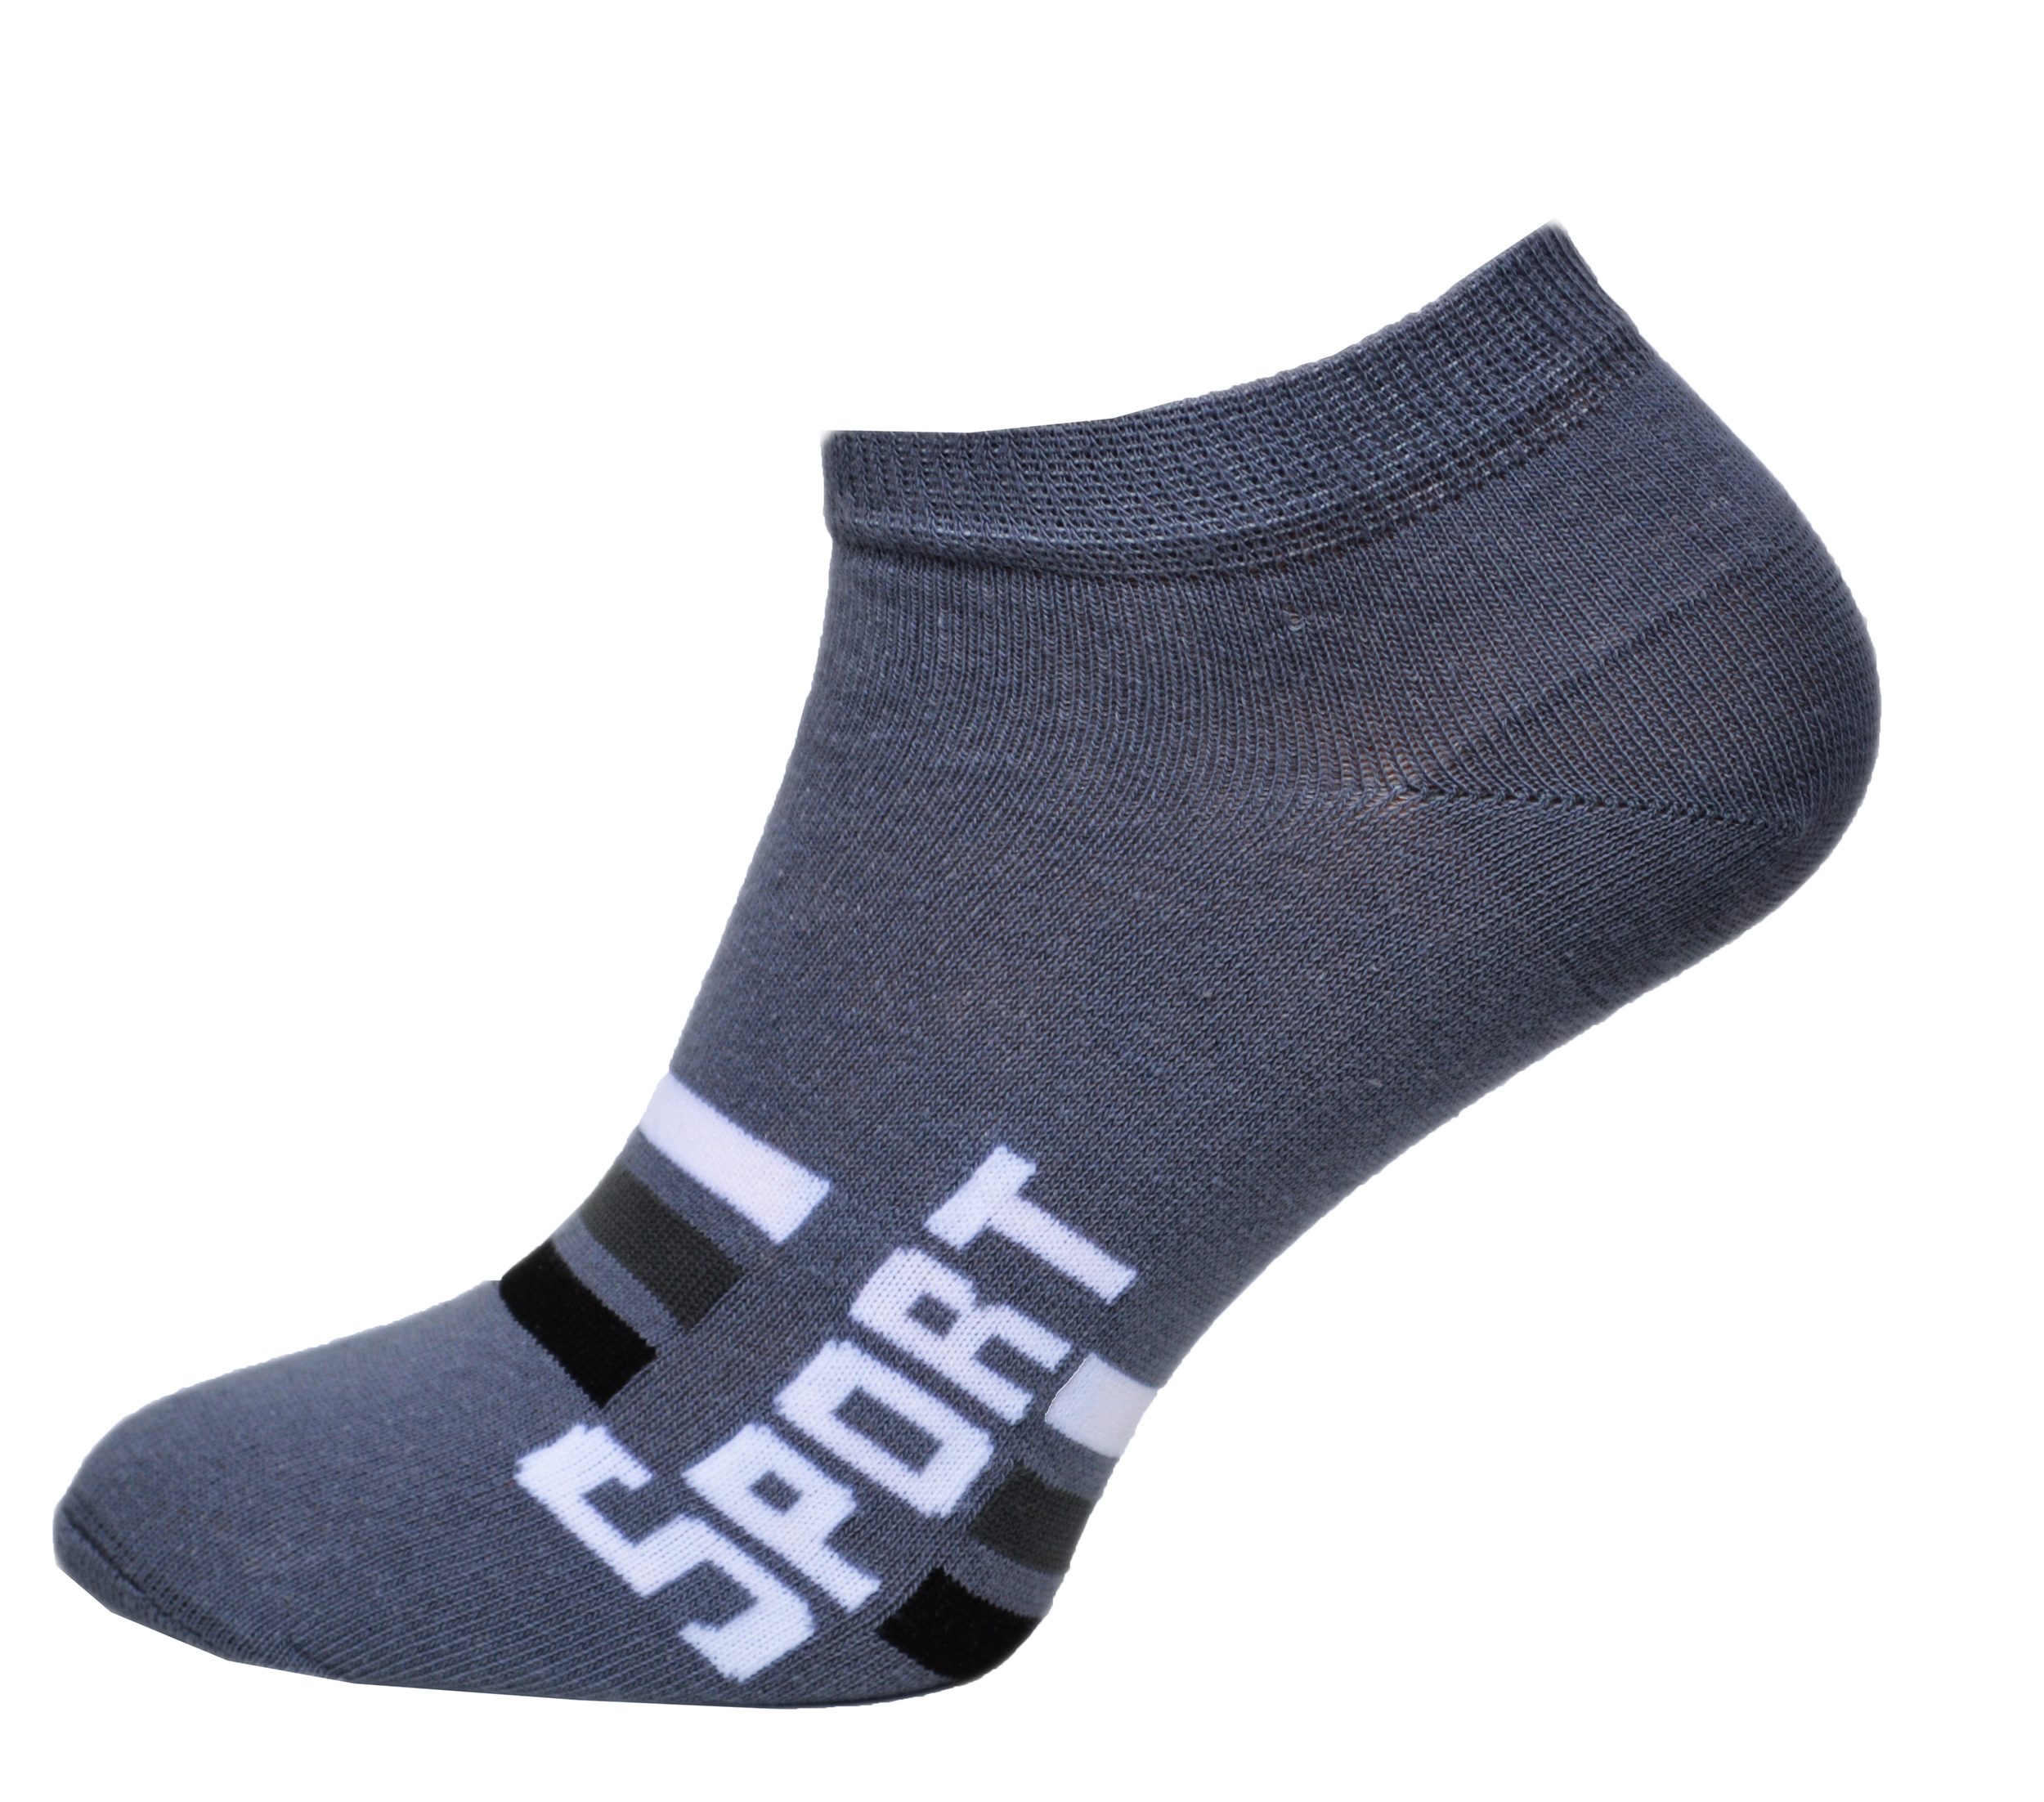 8 paar herren sneaker socken sport muster mit komfortbund sommersocken sneaker ebay. Black Bedroom Furniture Sets. Home Design Ideas